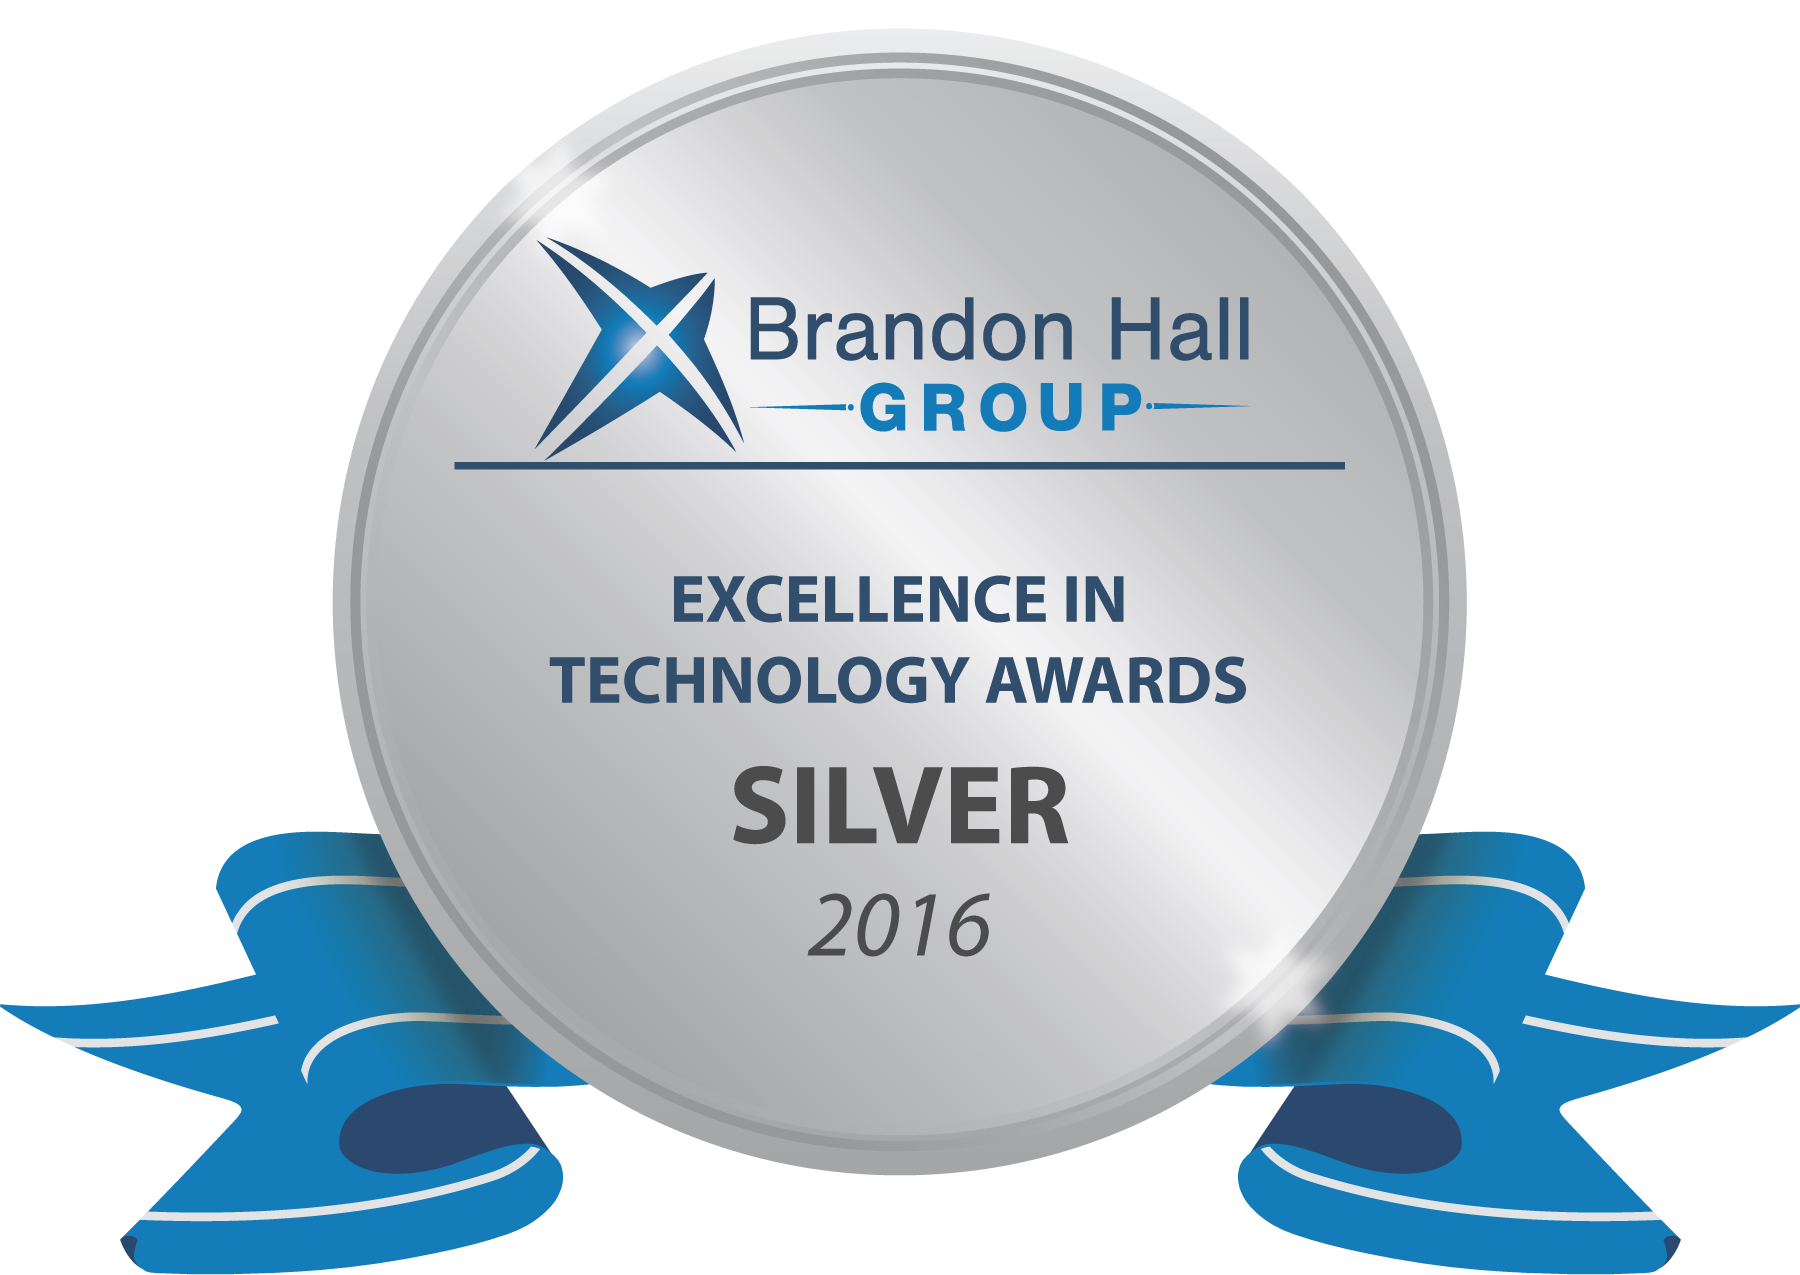 Silver Technology Awards